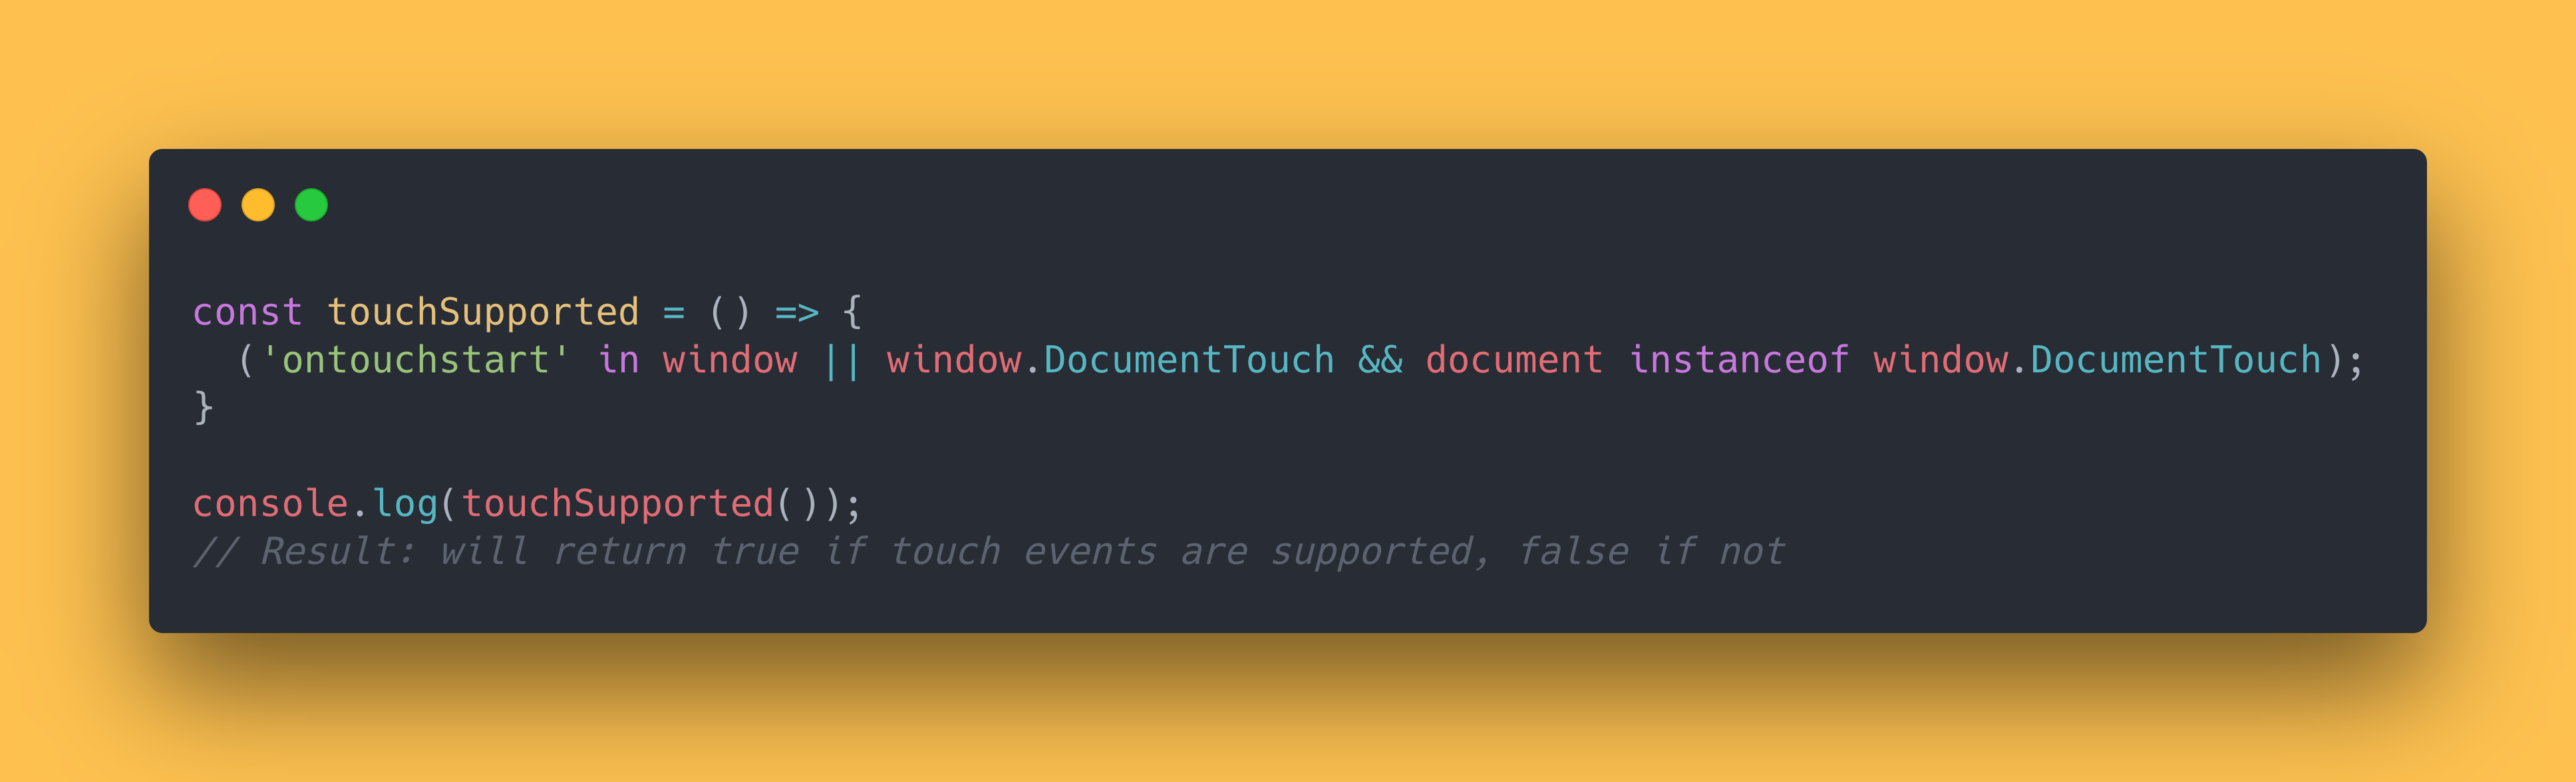 JS code block showing how to check if the current user has touch events supported.